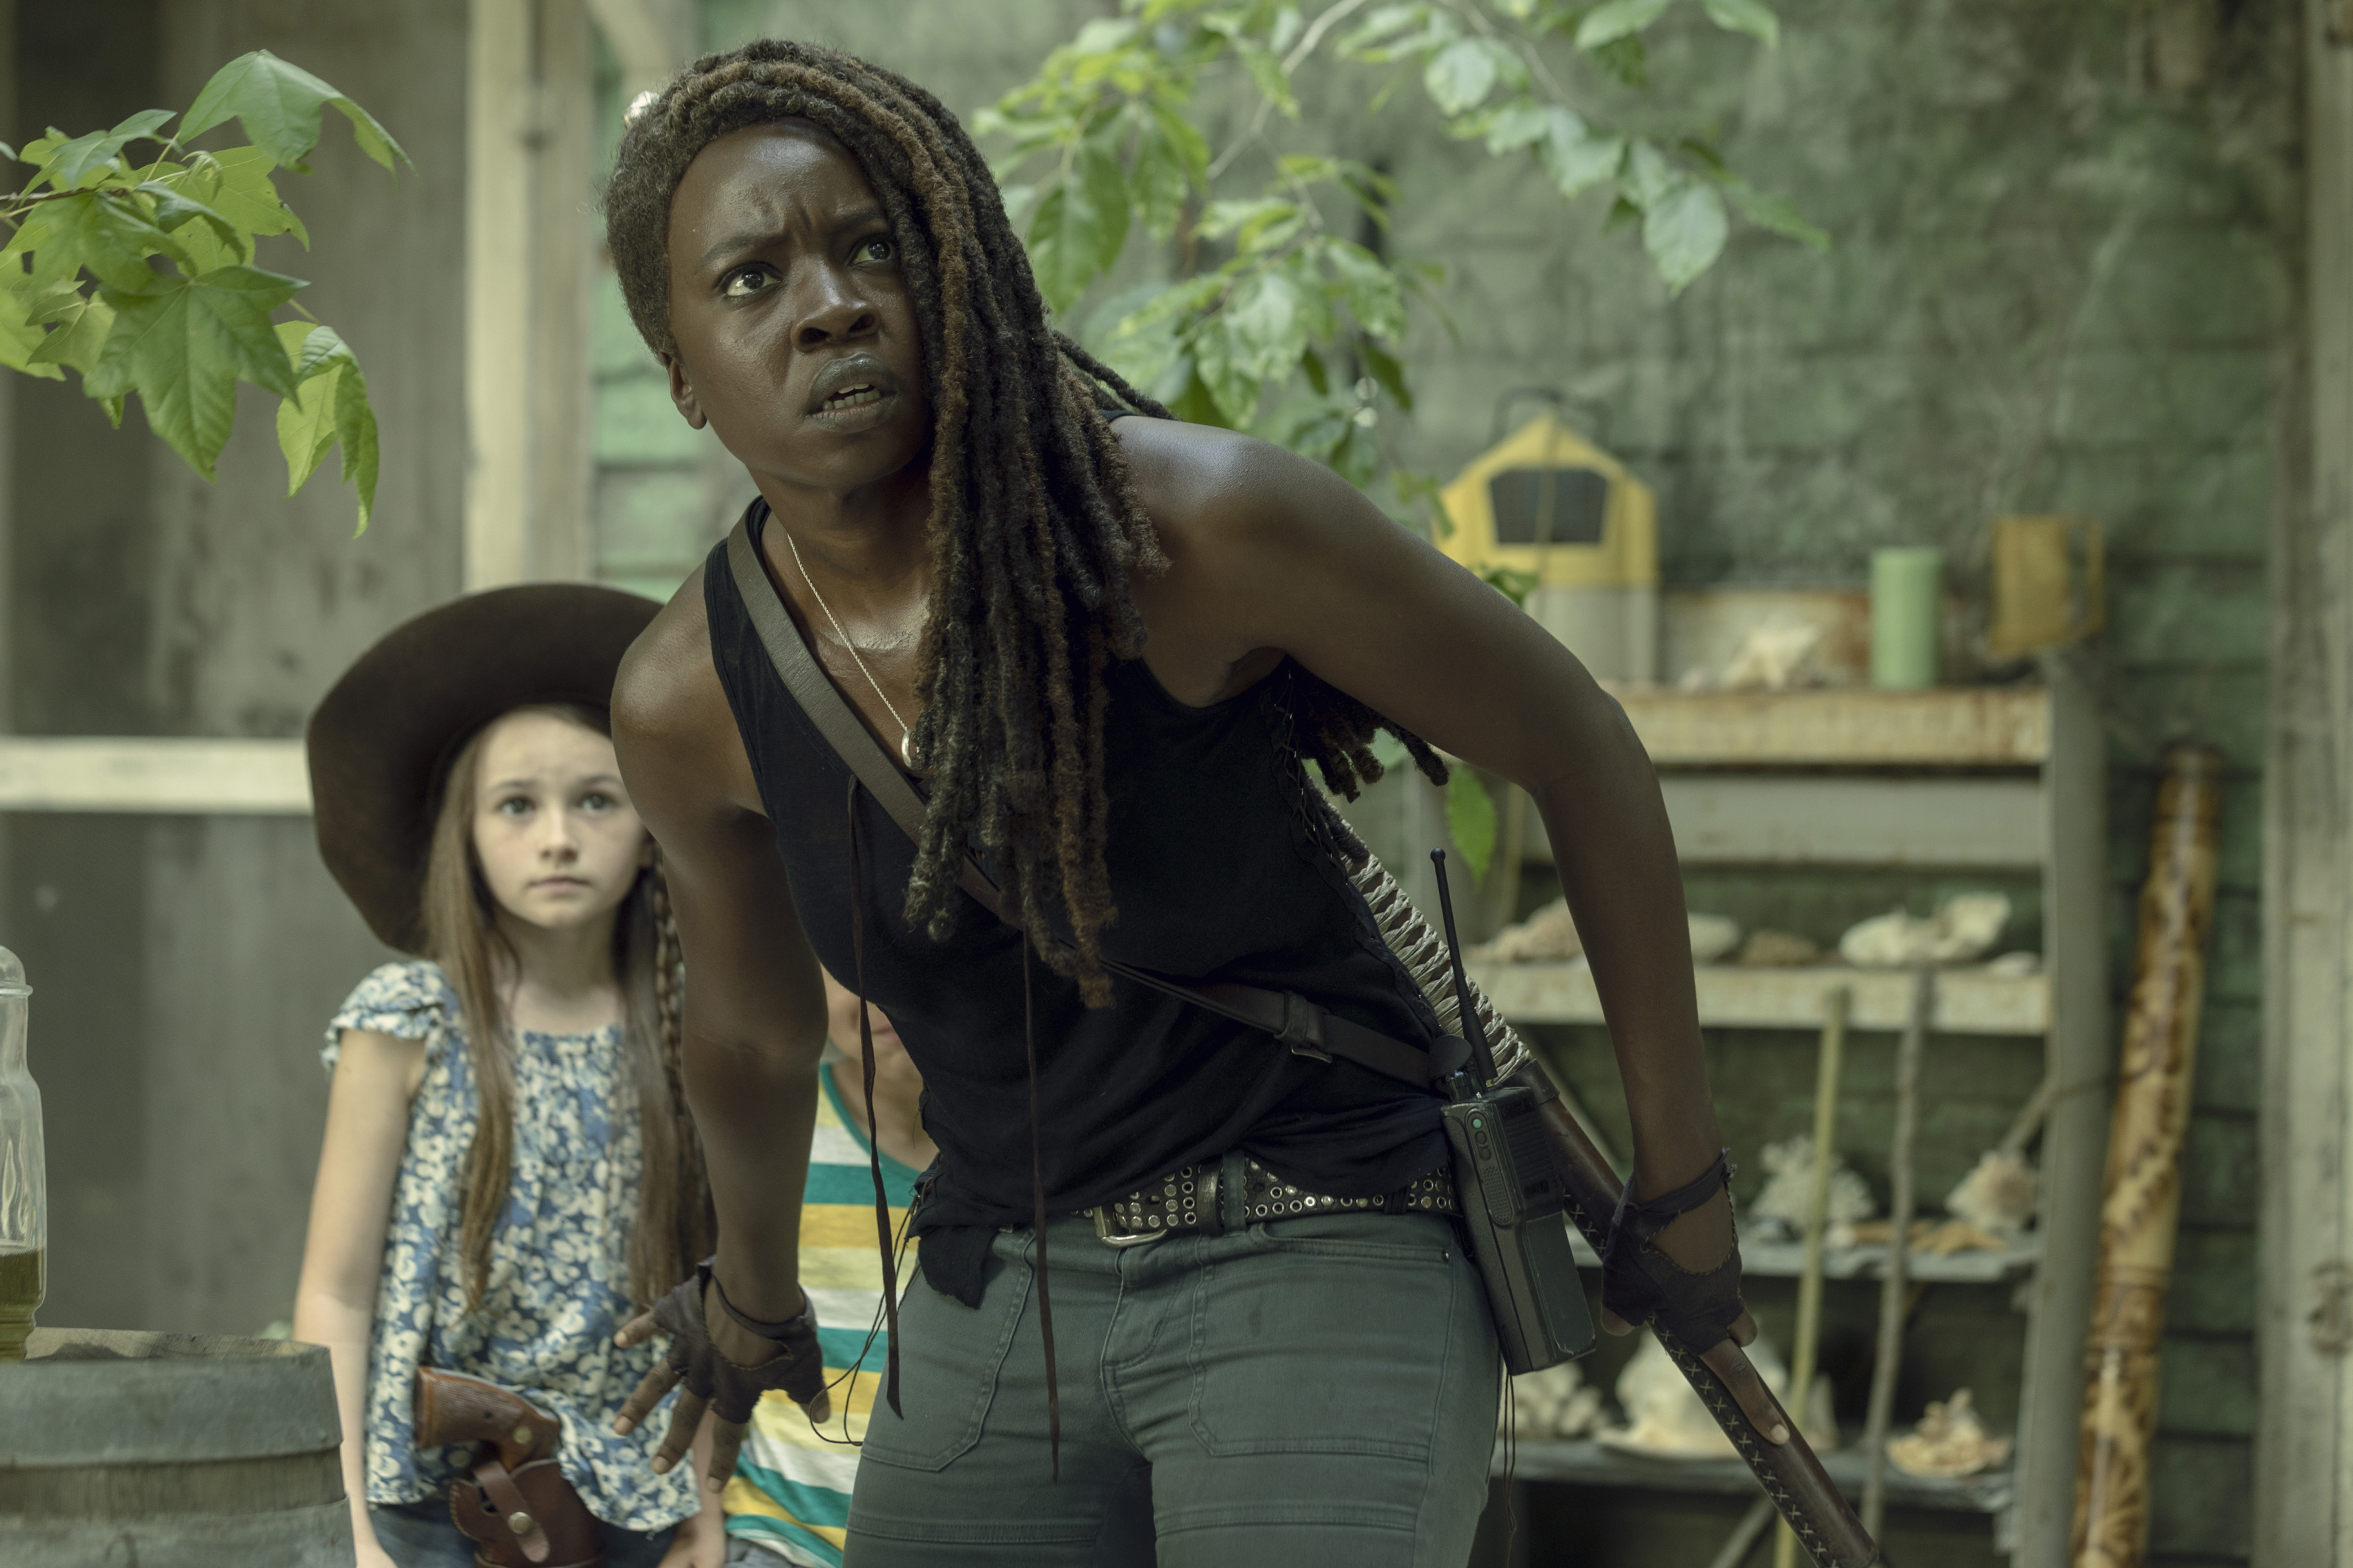 AMC makes episodes of The Walking Dead, other shows available for free